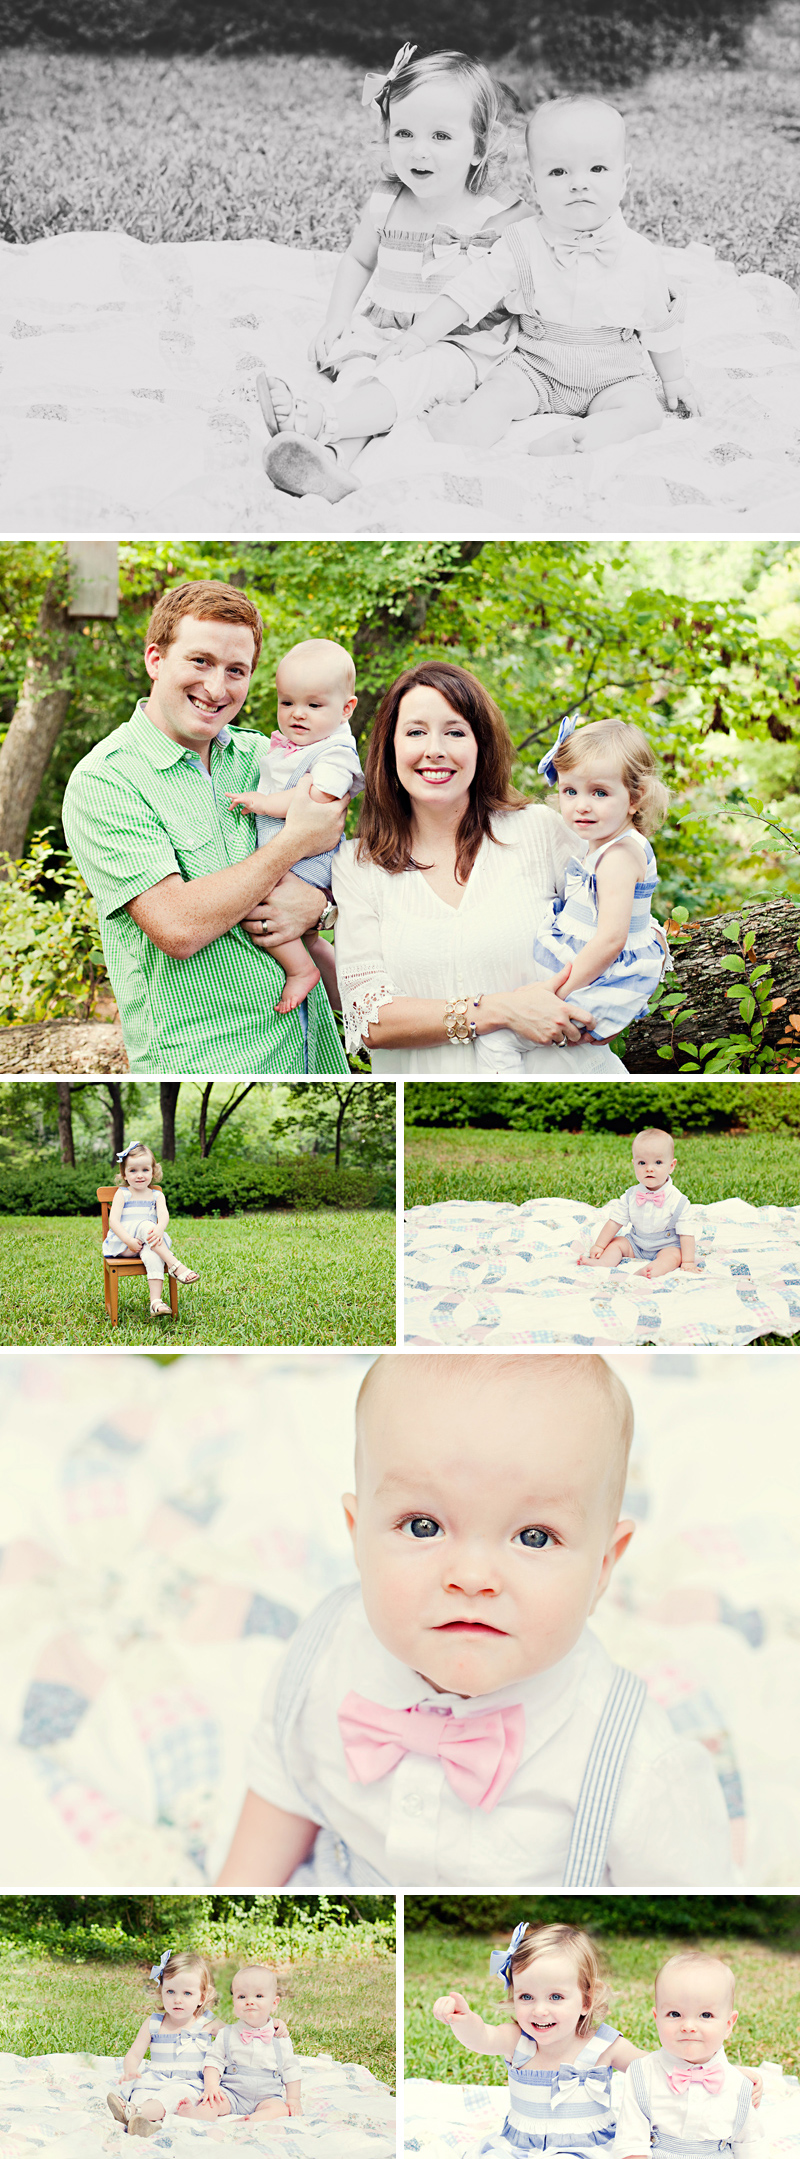 Dallas-Family-Photographerc011